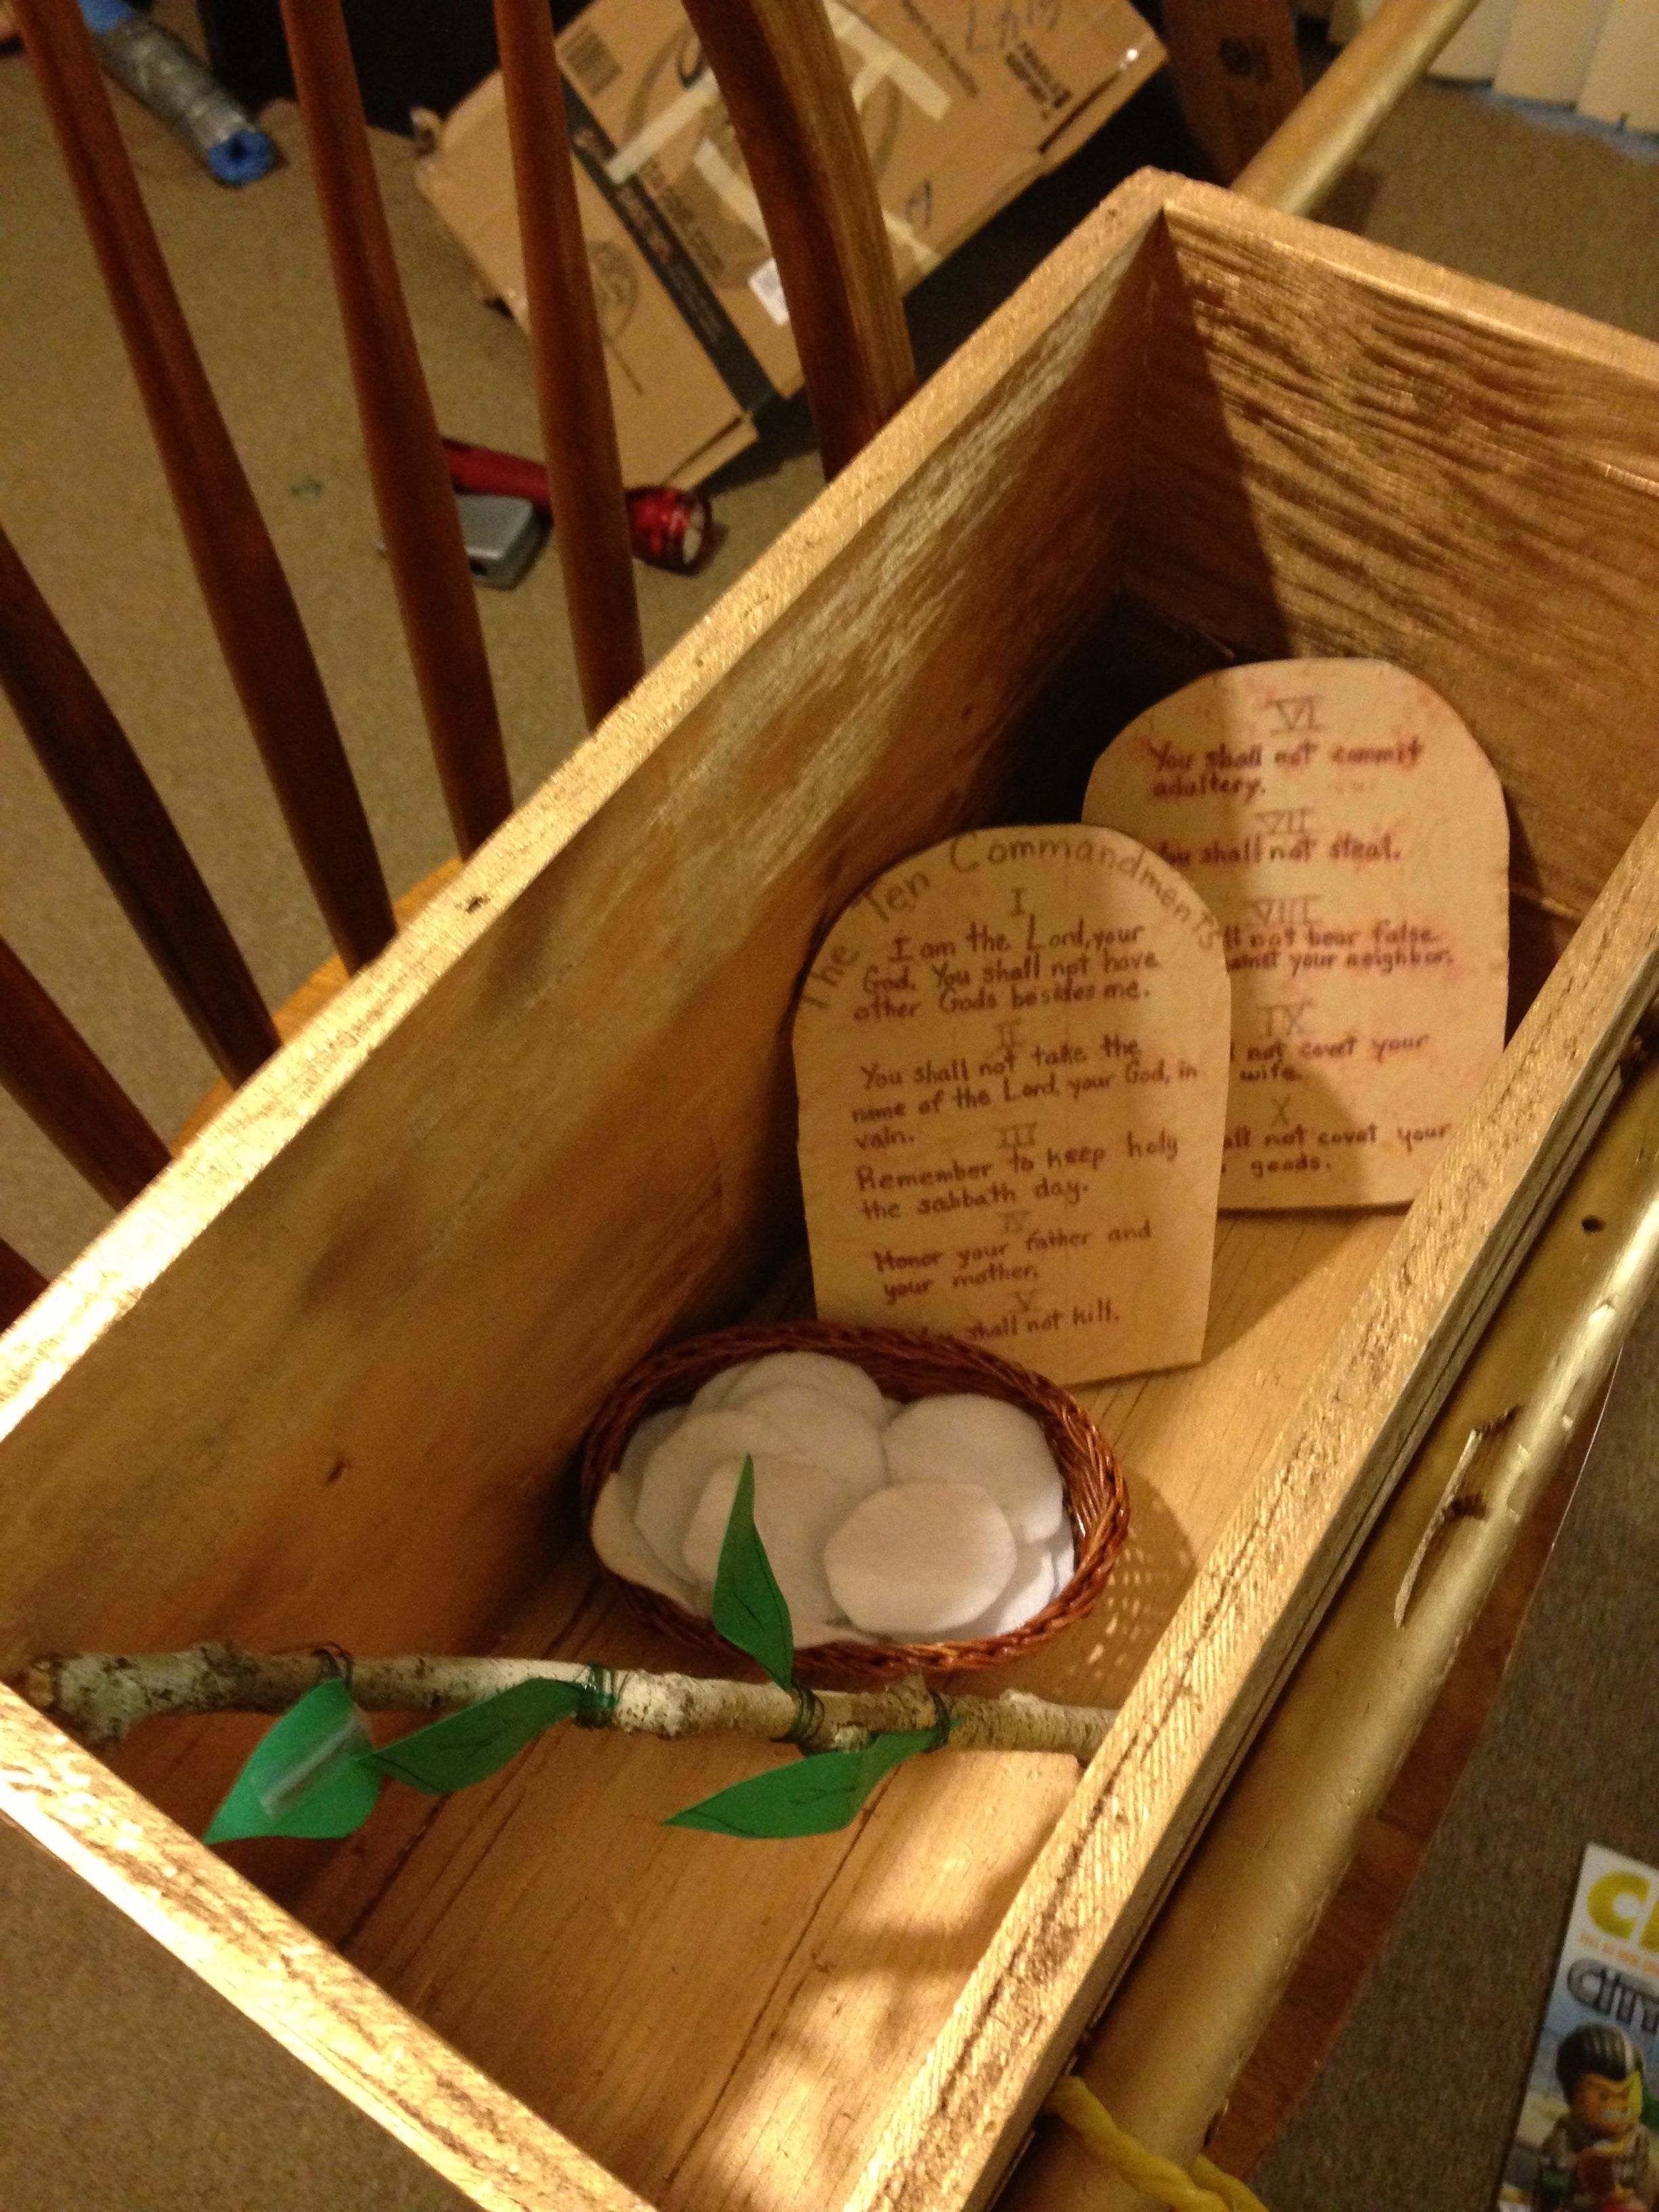 Inside the arc of the covenant church pinterest for The ark of craft